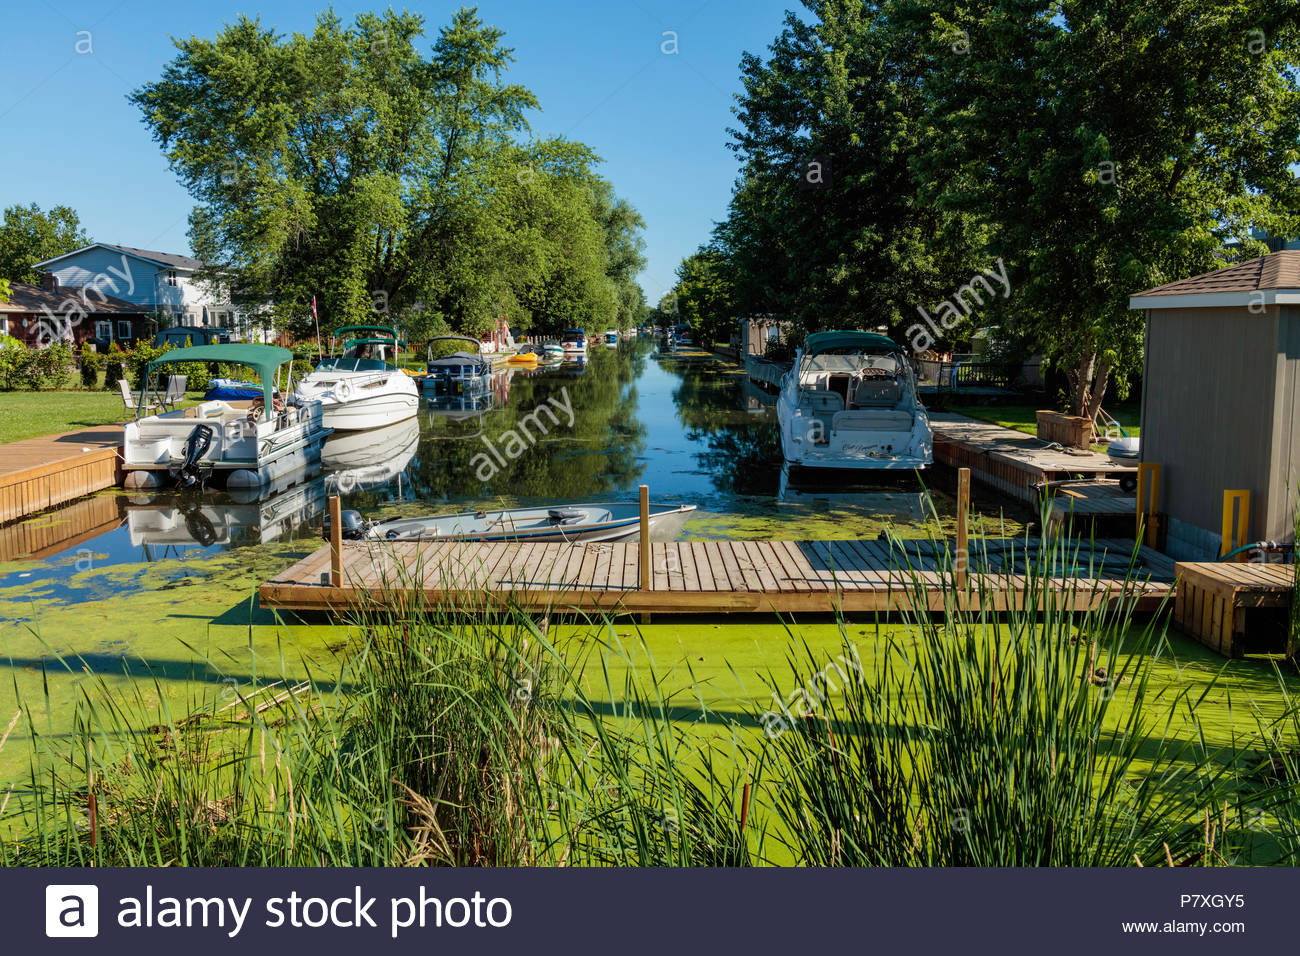 Recreational boat canal in a polder marsh near Lake Simcoe and Bradford Ontario Canada Holland Marsh - Stock Image